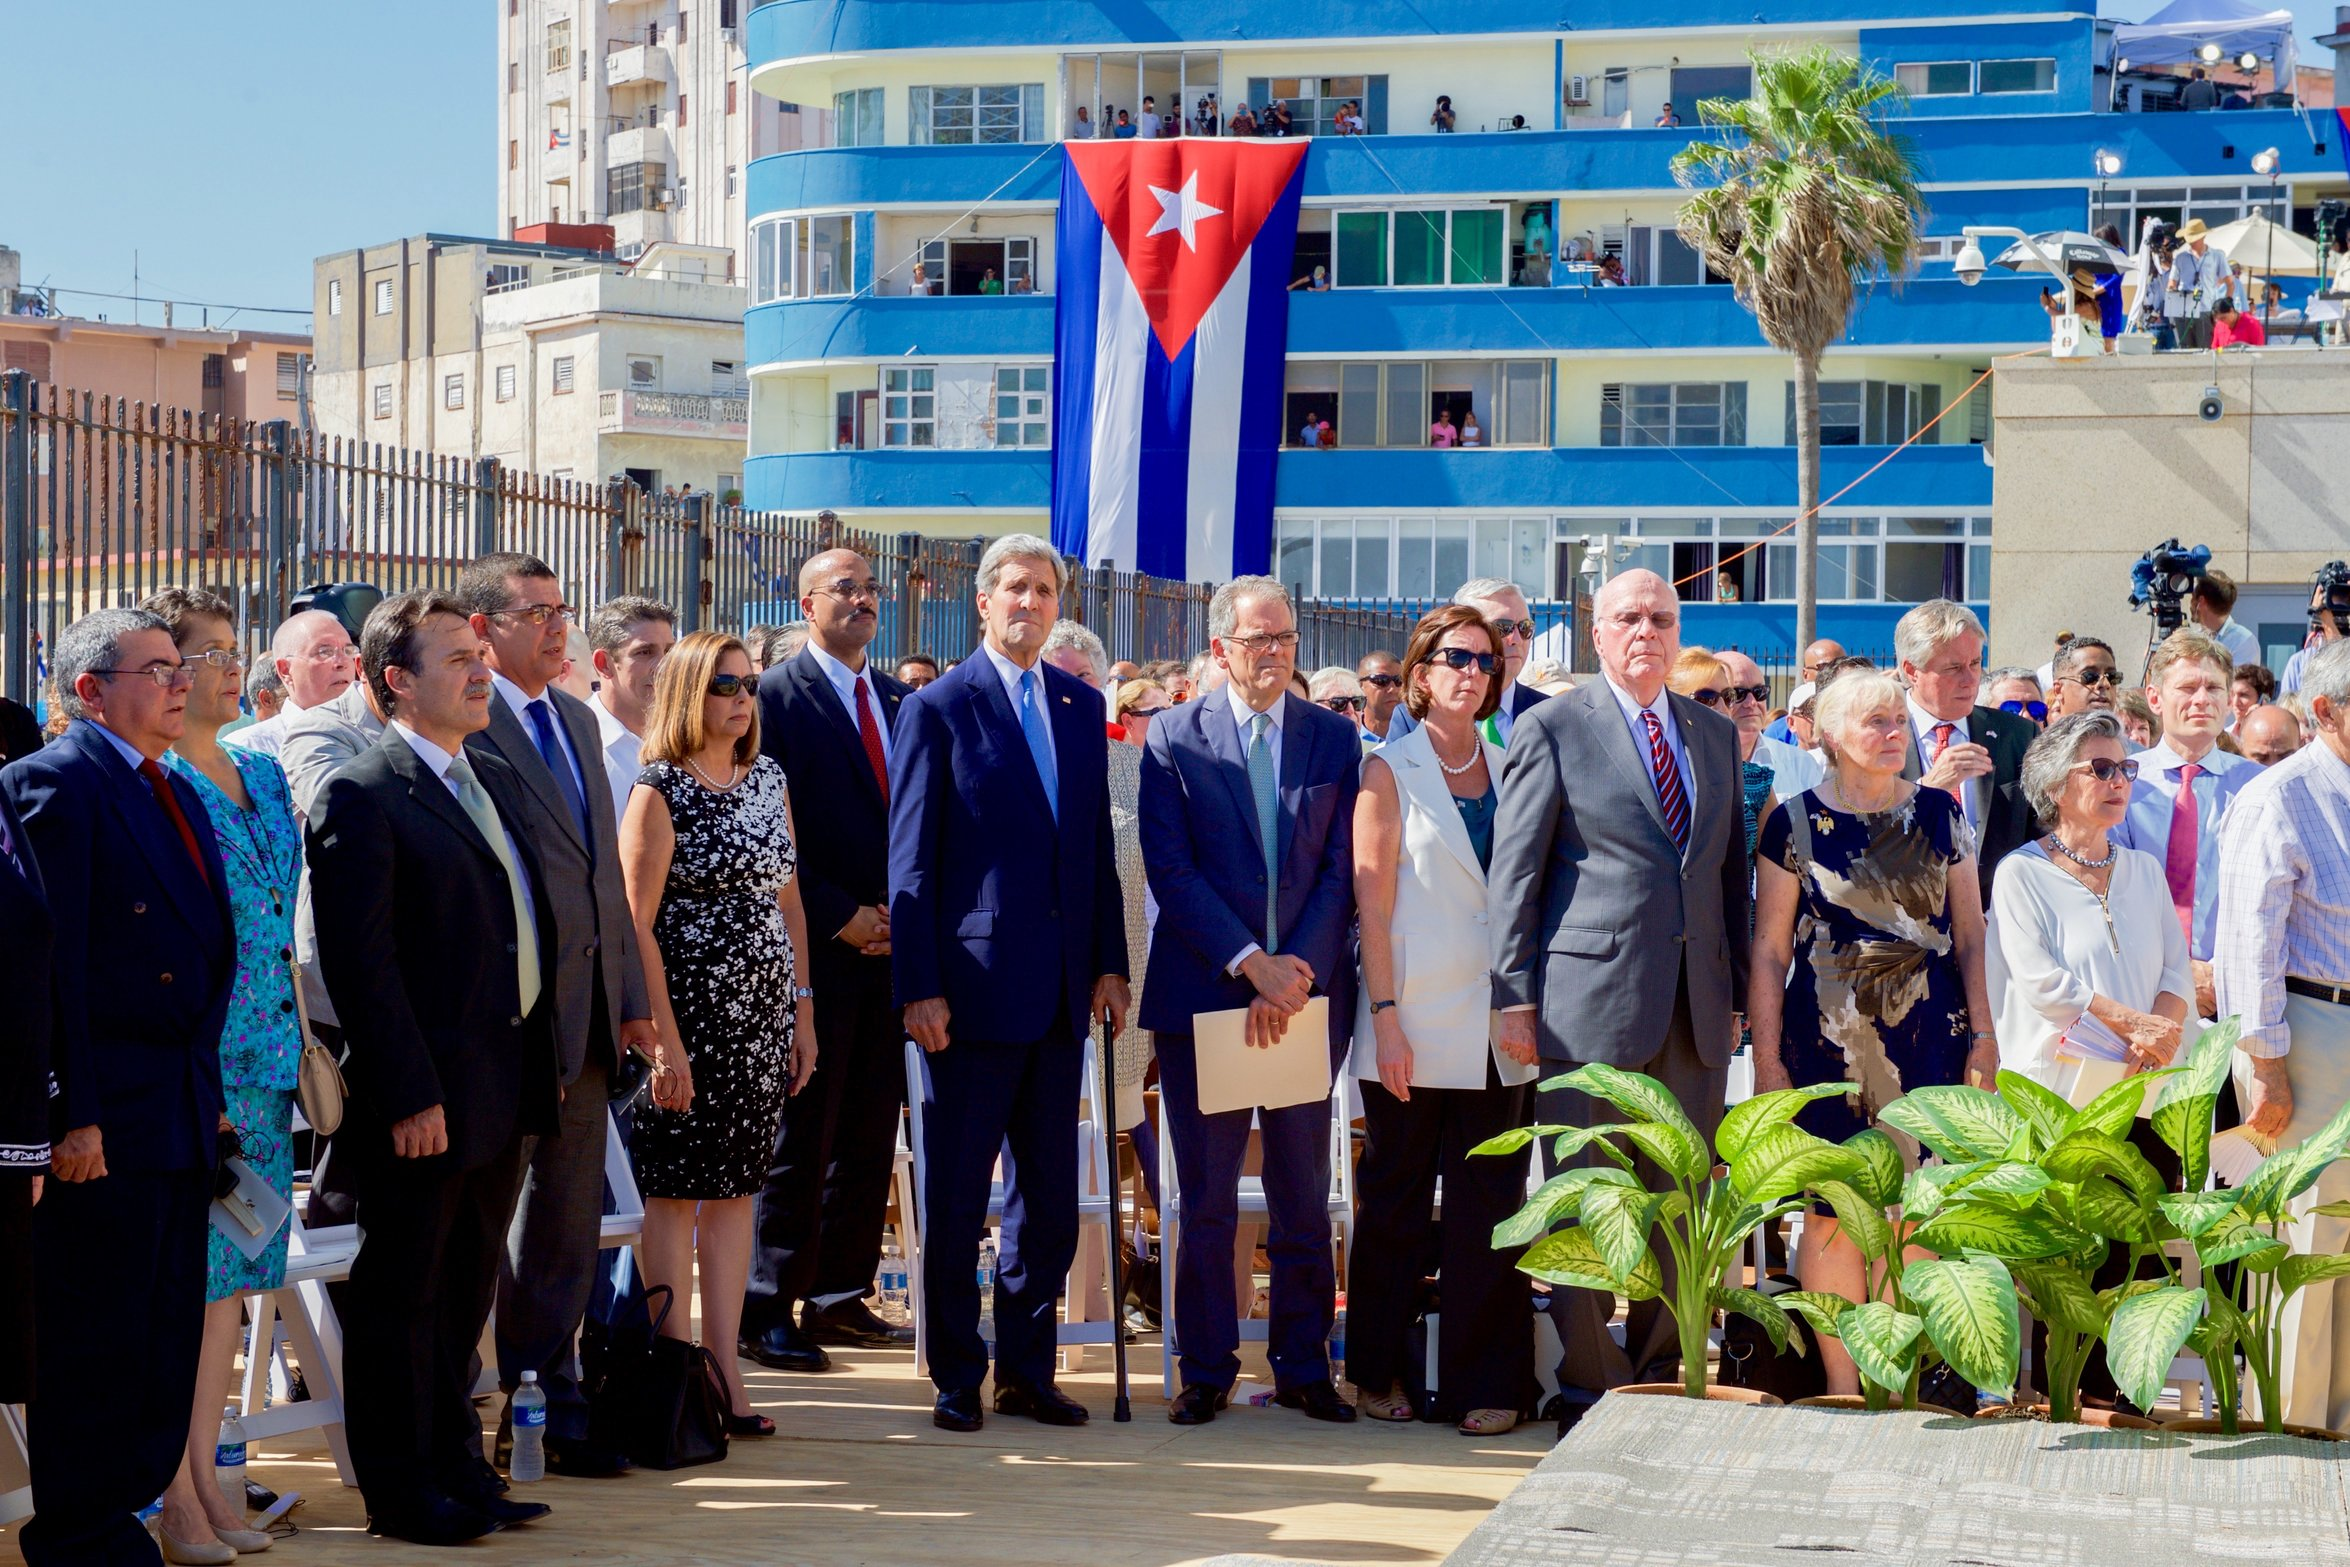 rsz_secretary_kerry_stands_for_the_cuban_national_anthem_at_the_newly_re-opened_us_embassy_havana_20384510058